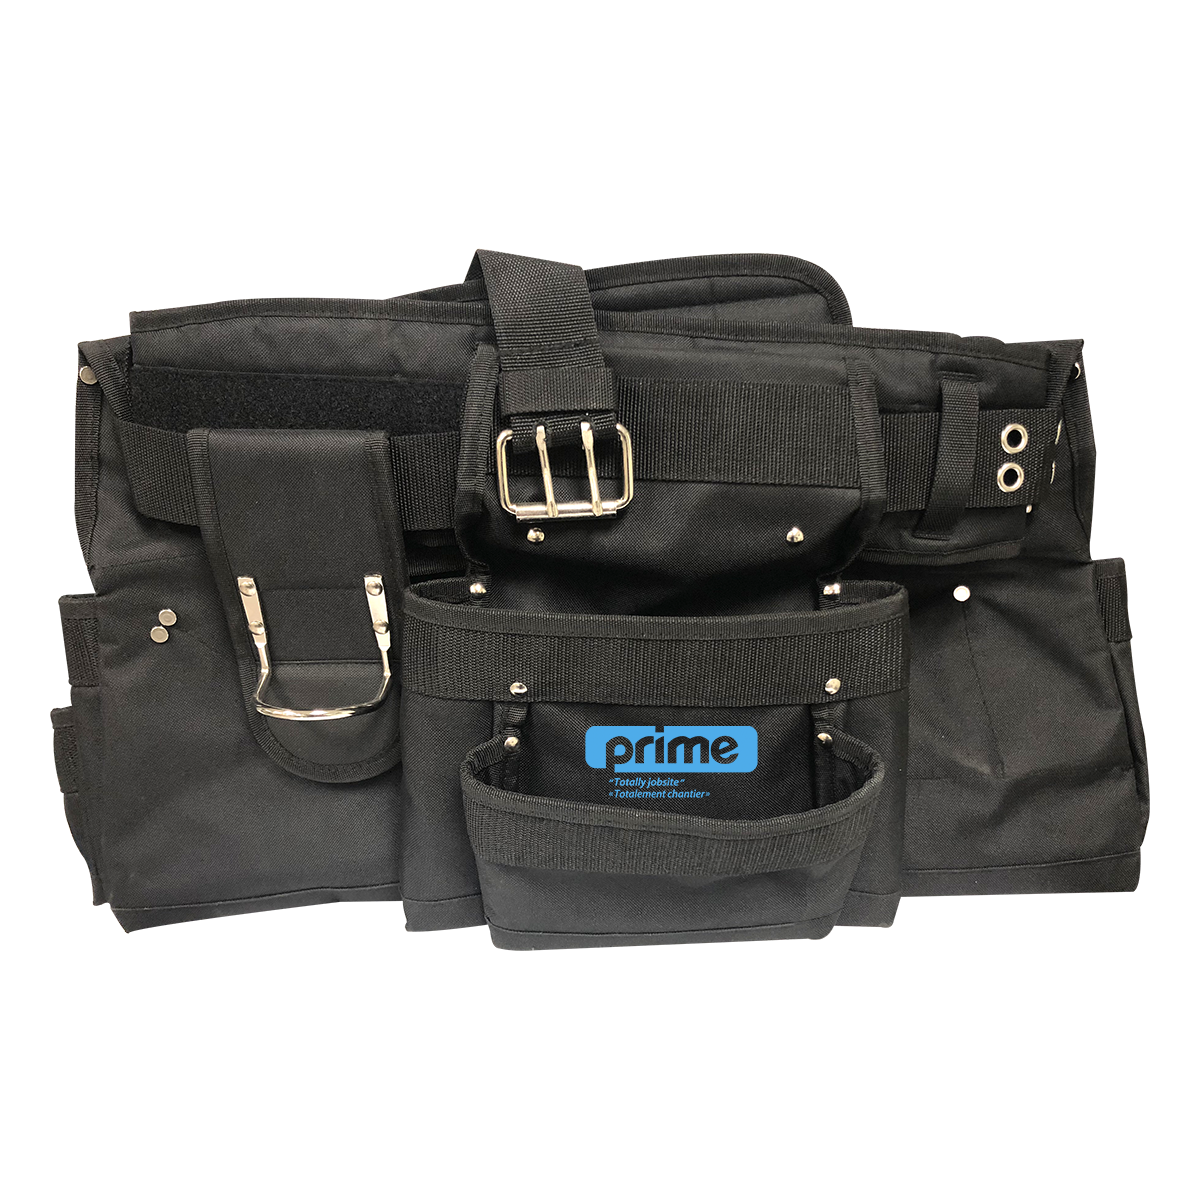 PRIME 17 POCKET TOOL BELT